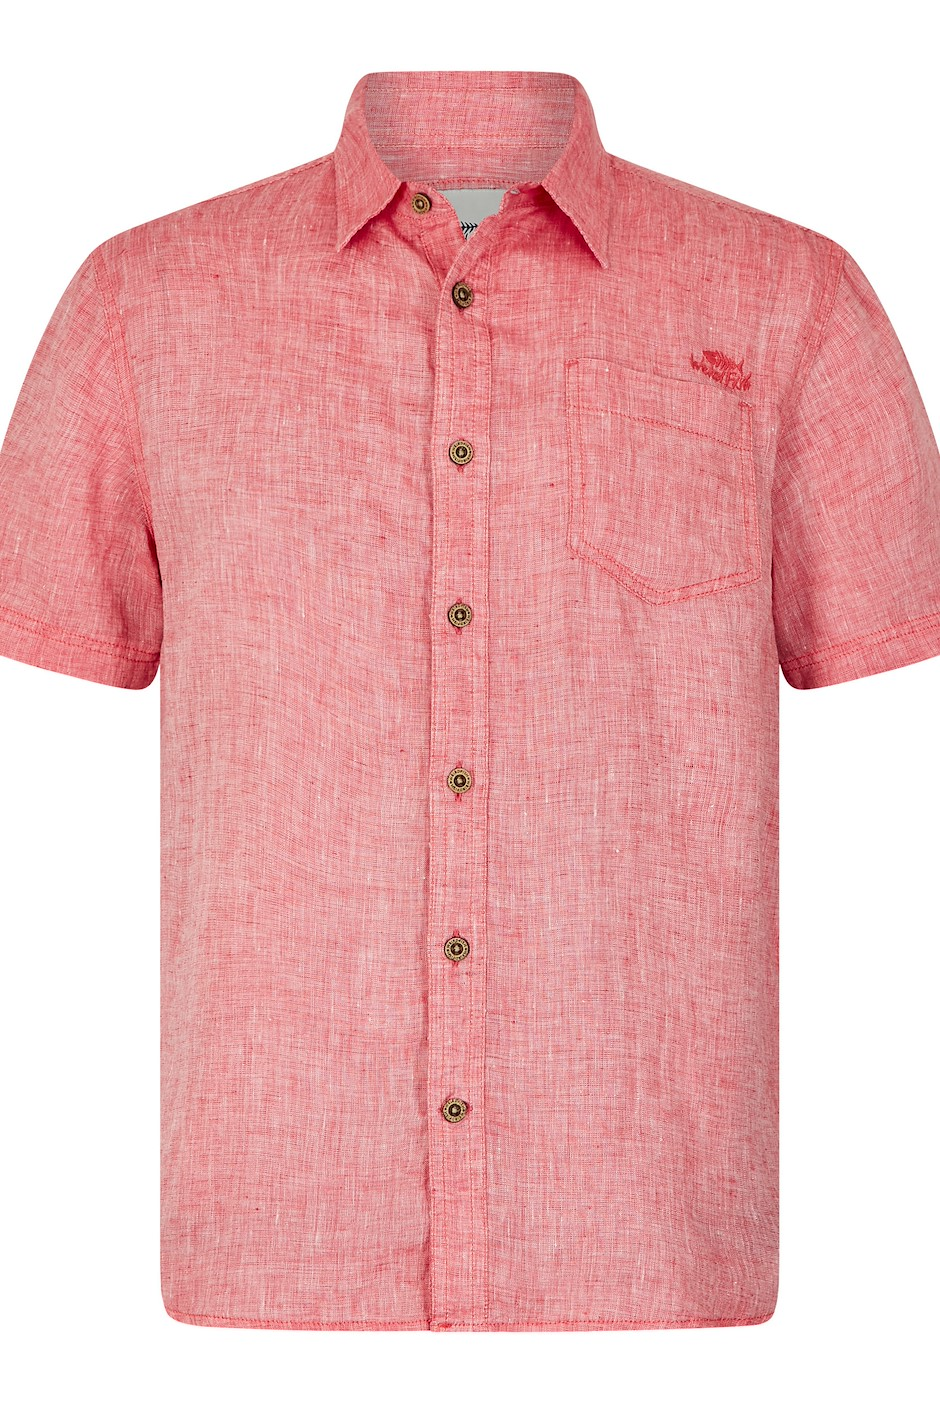 Lanark Short Sleeve Linen Shirt Dark Red